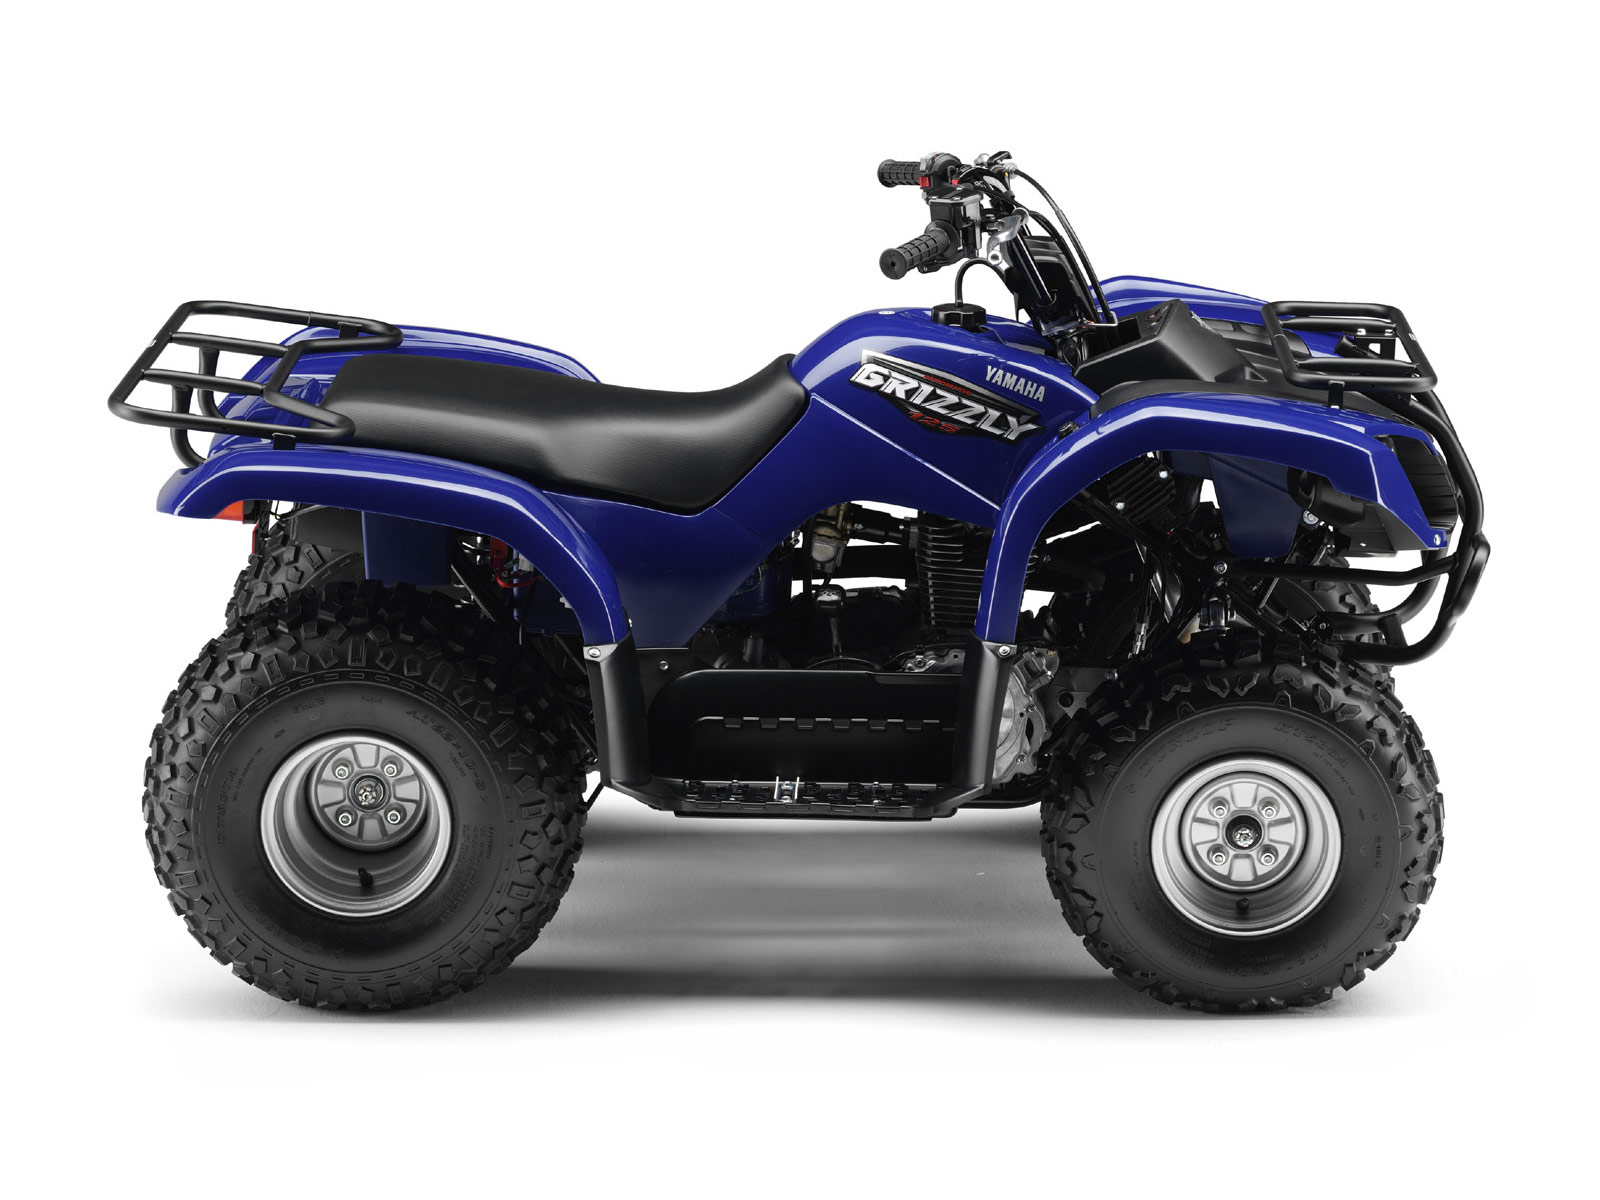 2009 YAMAHA Grizzly 125 ATV wallpapers, specifications